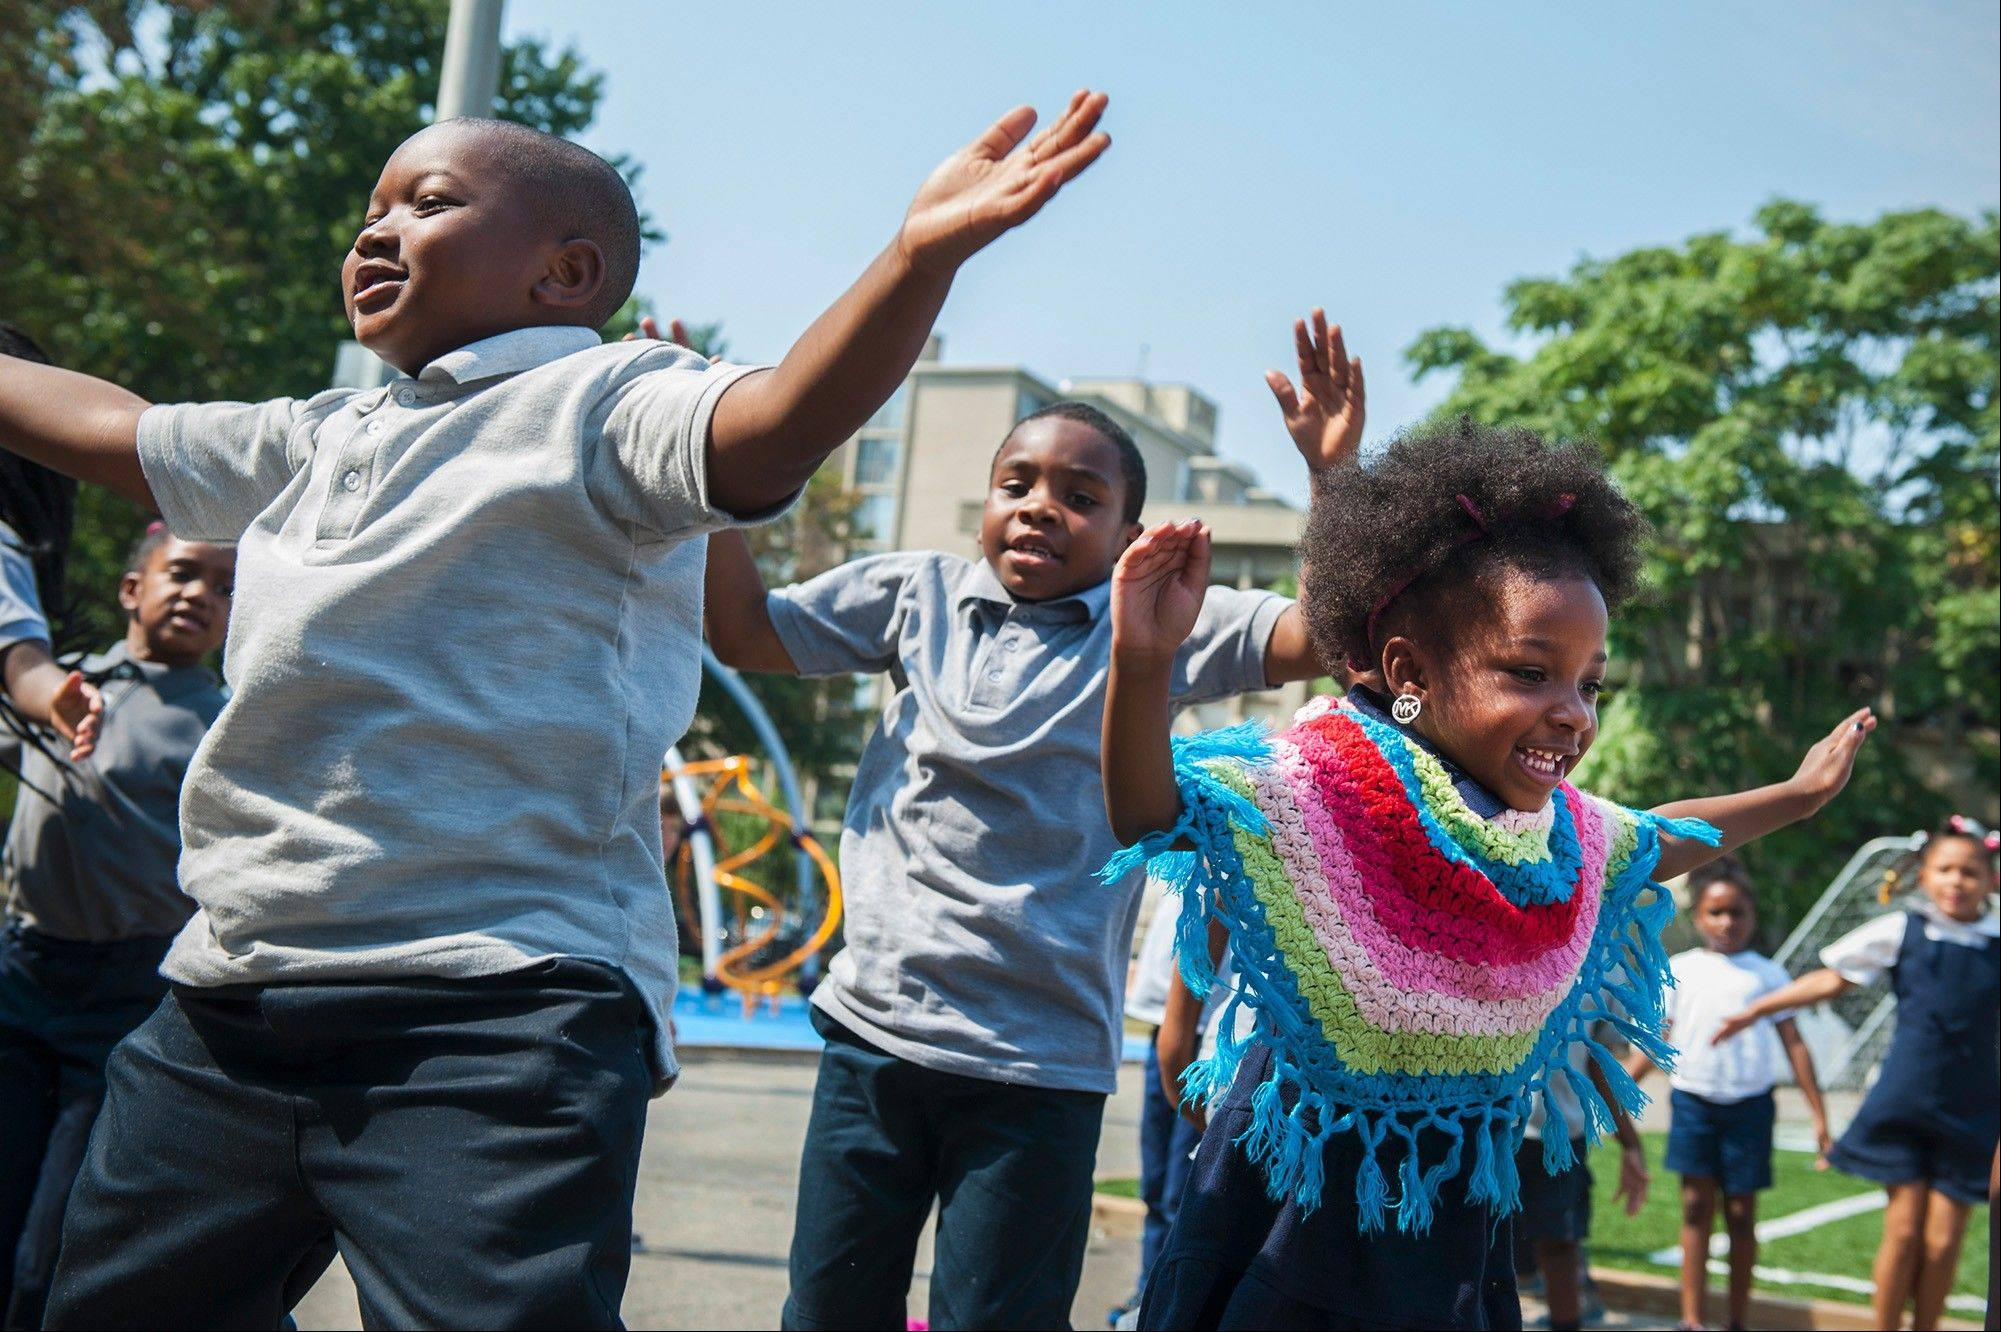 Johntae McFarland, Terrance Turner and Zanniyah Freeman do jumping jacks before recess at Amidon-Bowen Elementary School; studies show that recess not only improves children's fitness, but benefits their emotional growth and academic performance.